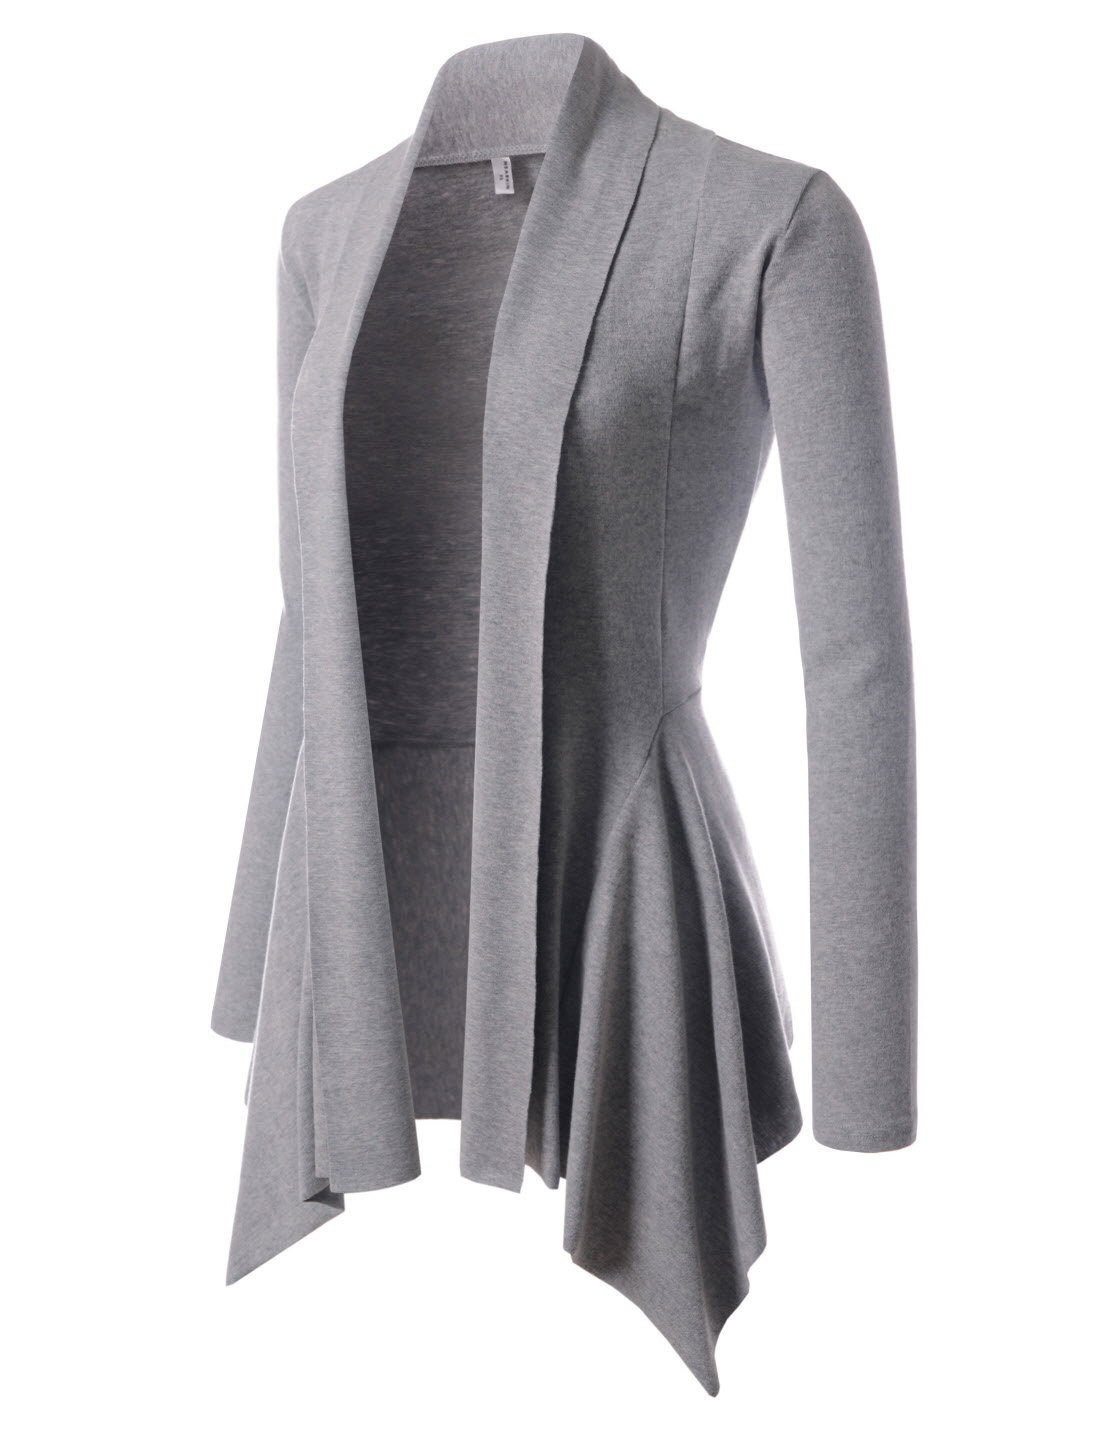 NEARKIN (NKNKWCD691) Womens Open Front Shawl Collar Draped Solid Cardigans GRAY US XS(Tag size S)